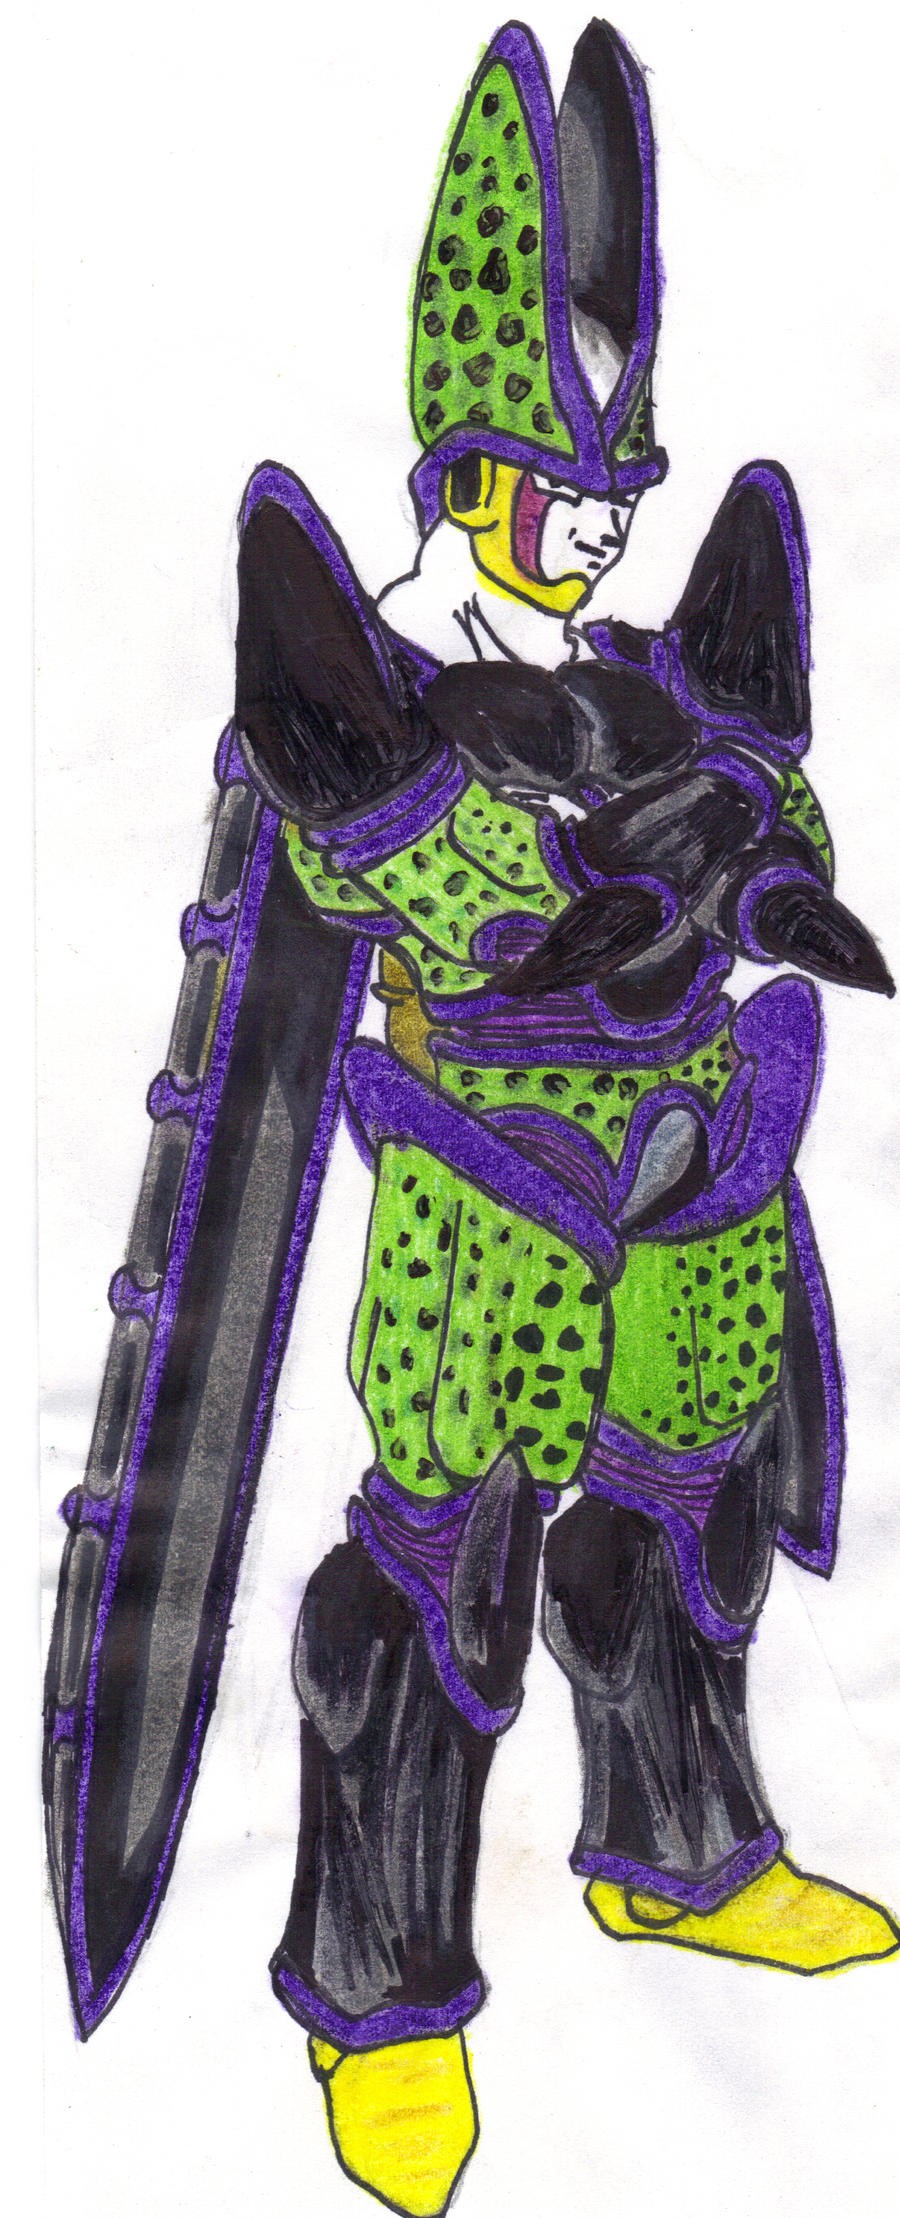 UltimateSuperPerfectCell Form by DBZ2010 on DeviantArt